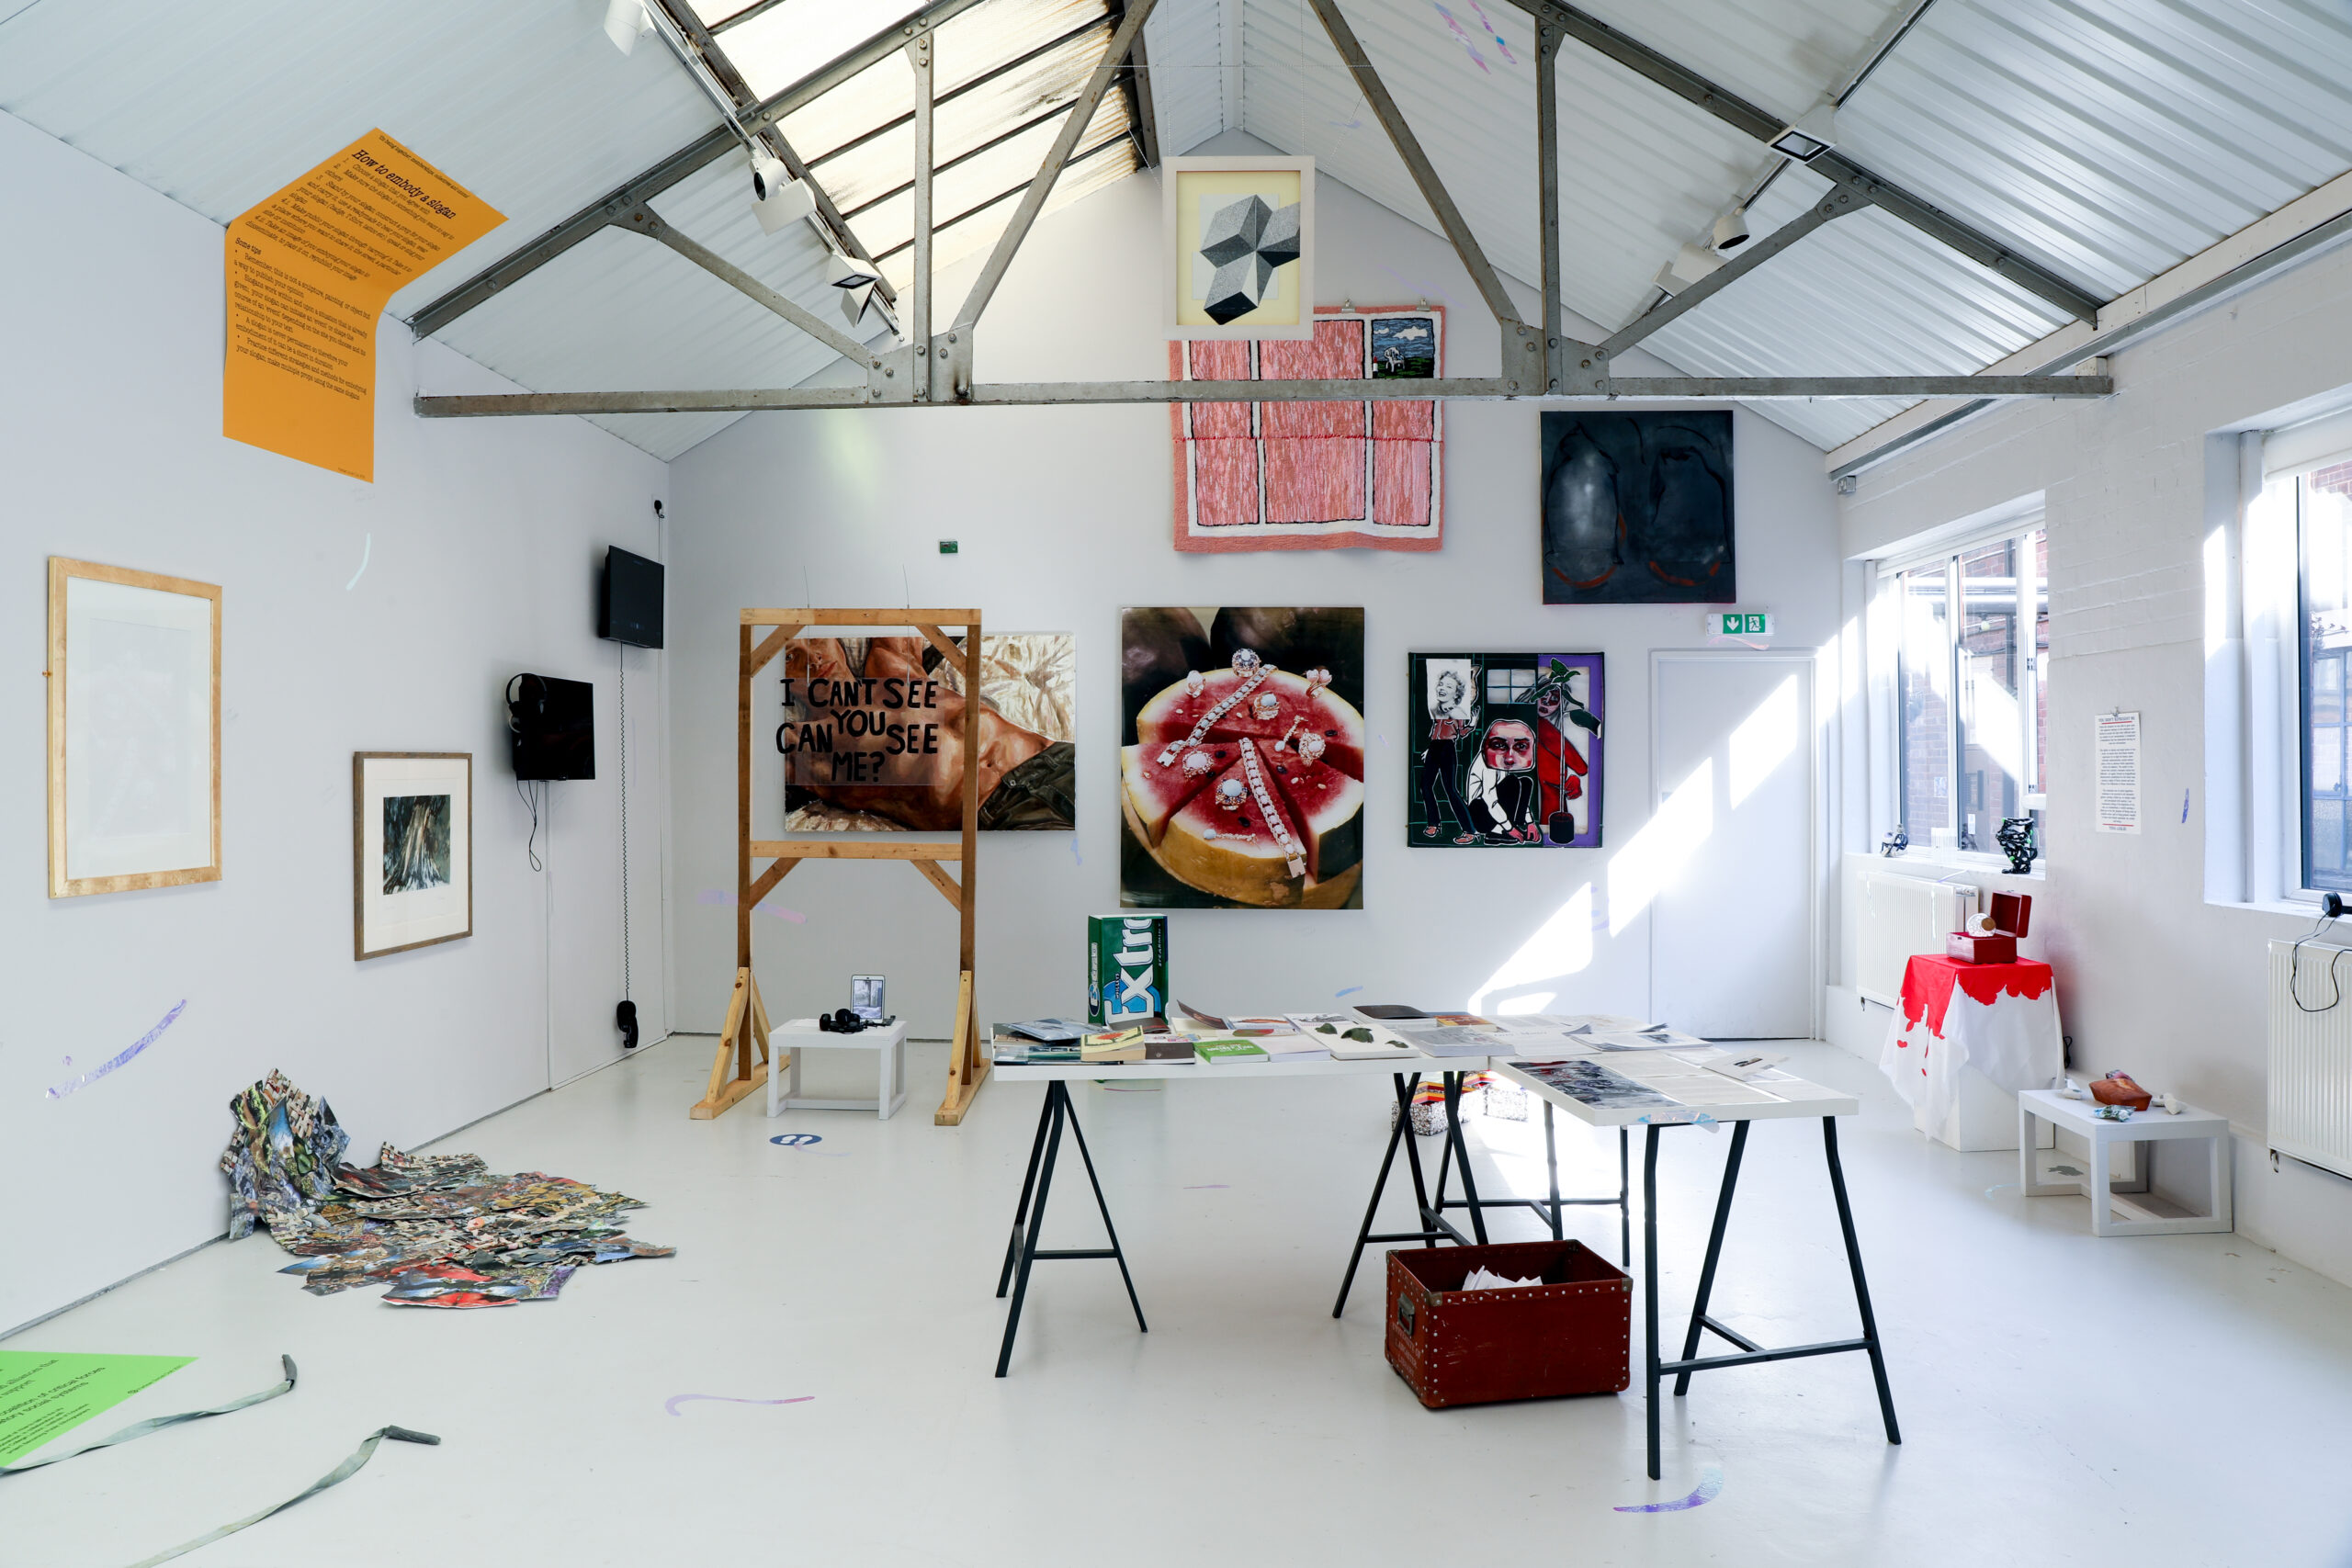 Installation image of the exhibition.